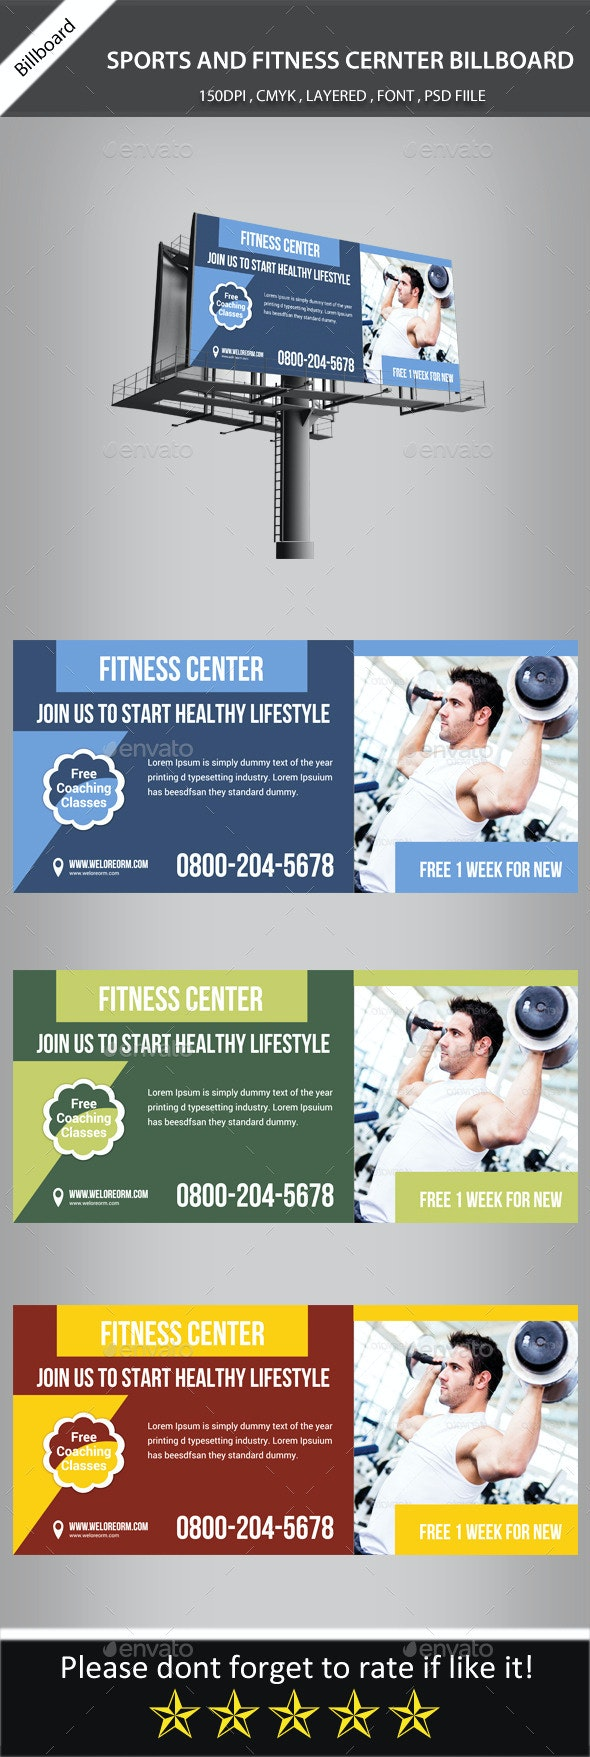 Fitness Center Billboard Banner Psd Template - Signage Print Templates